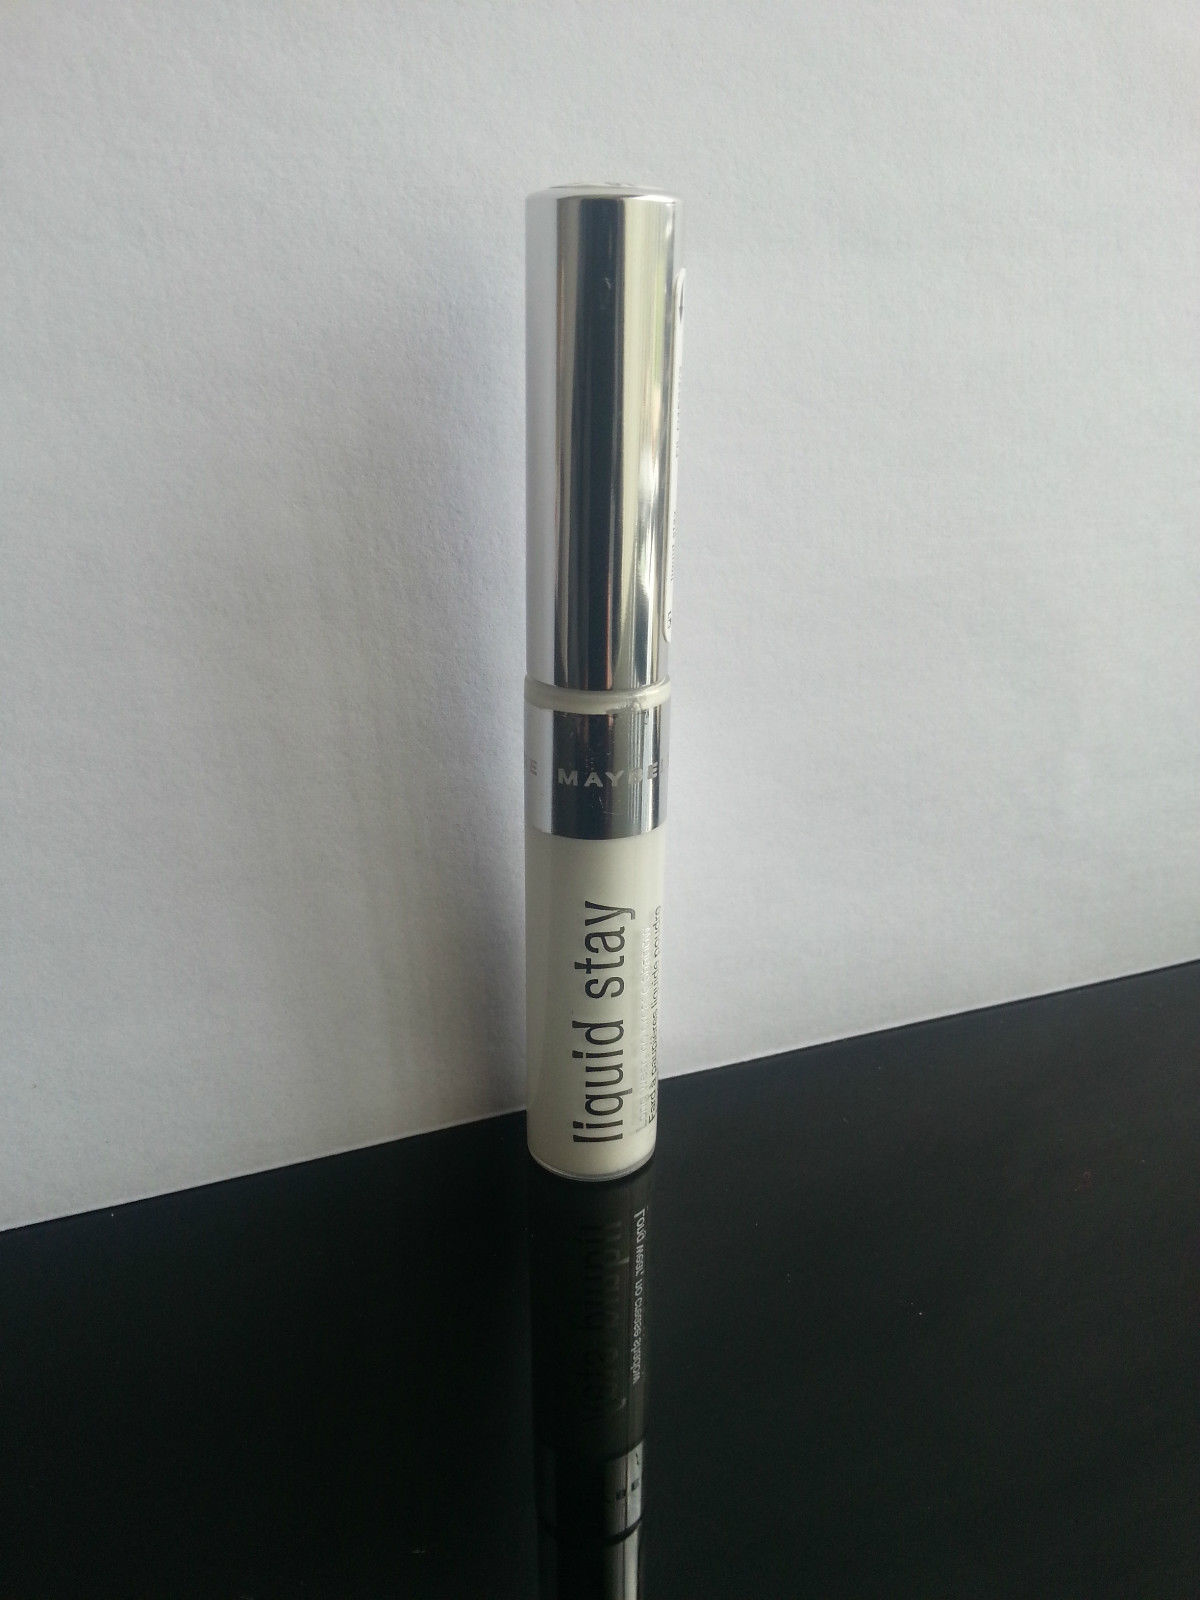 MAYBELLINE LIQUID STAY EYE SHADOW - #10 Forever Frost